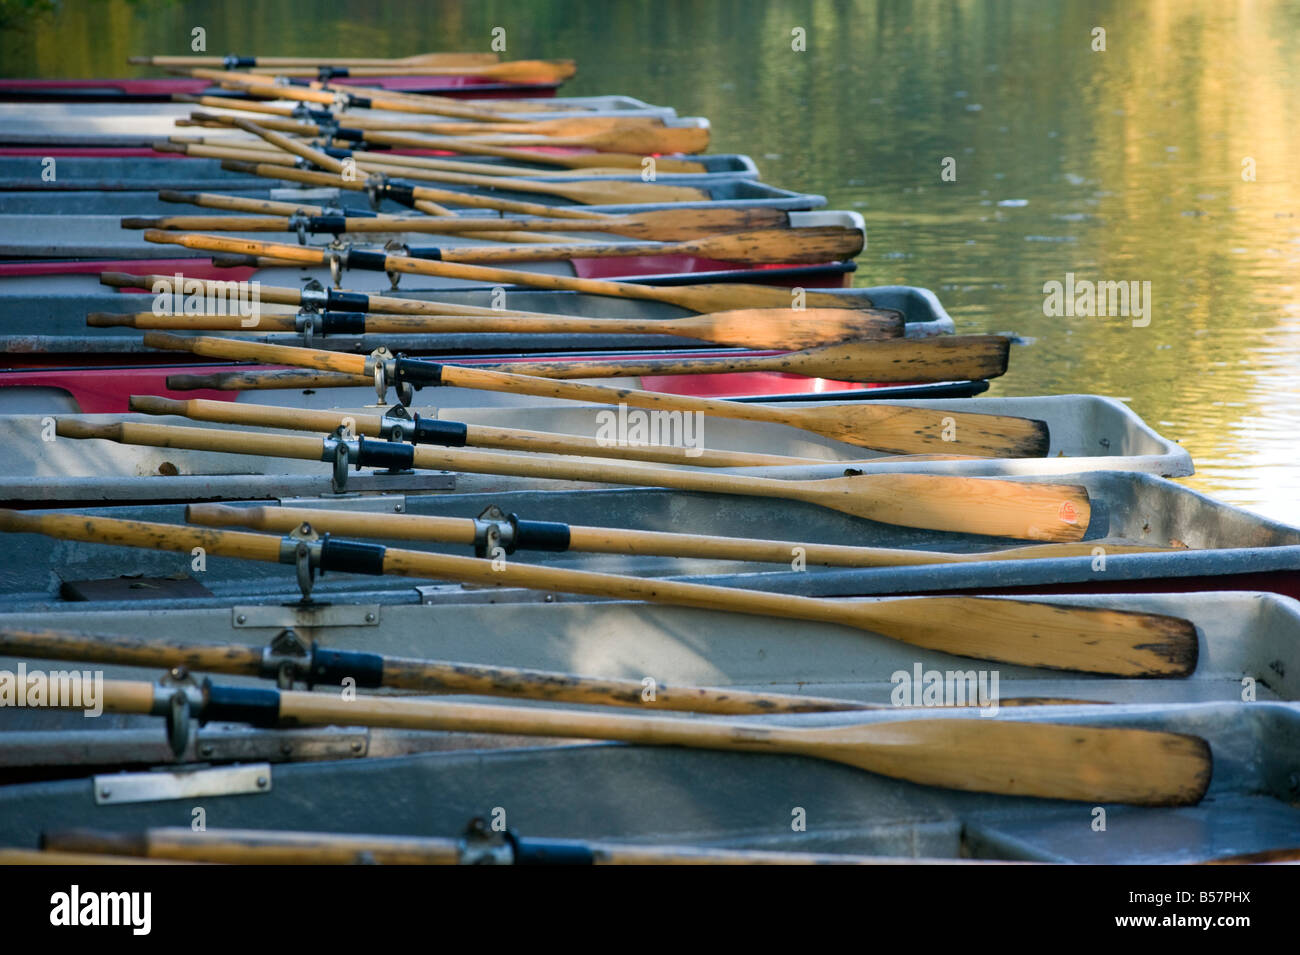 Rowing boats moored at pier on North Sea Lake or Nord See in Tiergarten Park in Berlin Germany 2008 - Stock Image